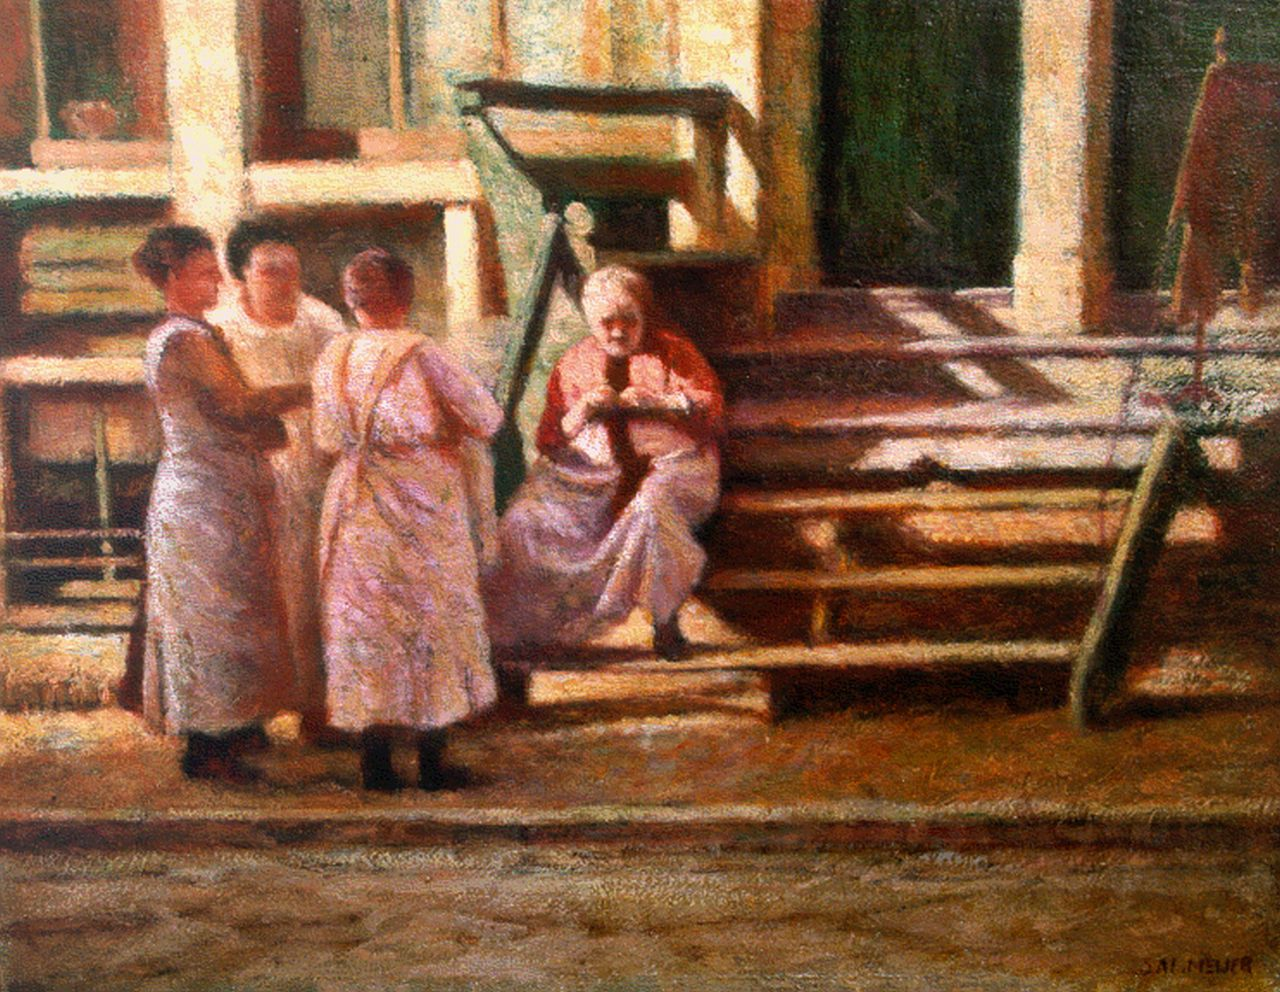 Meijer S.  | Salomon 'Sal' Meijer, Women in a sunlit street, Amsterdam, oil on panel 21.2 x 27.0 cm, signed l.r.